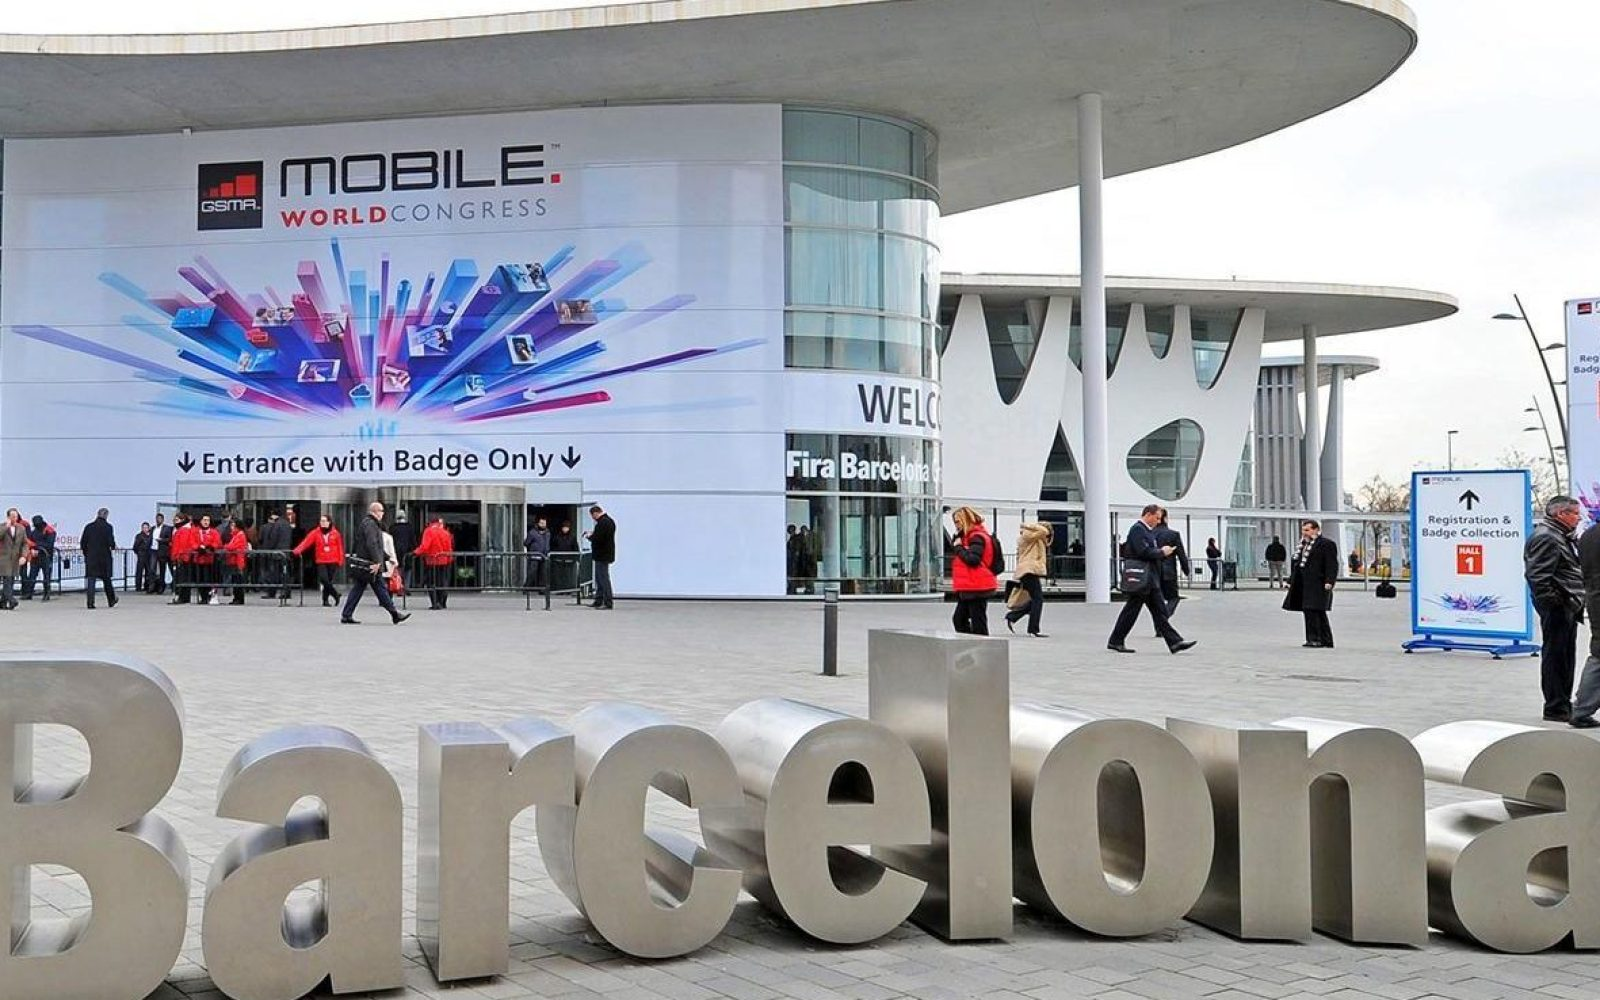 All the big Android announcements we expect to see at Mobile World Congress 2017